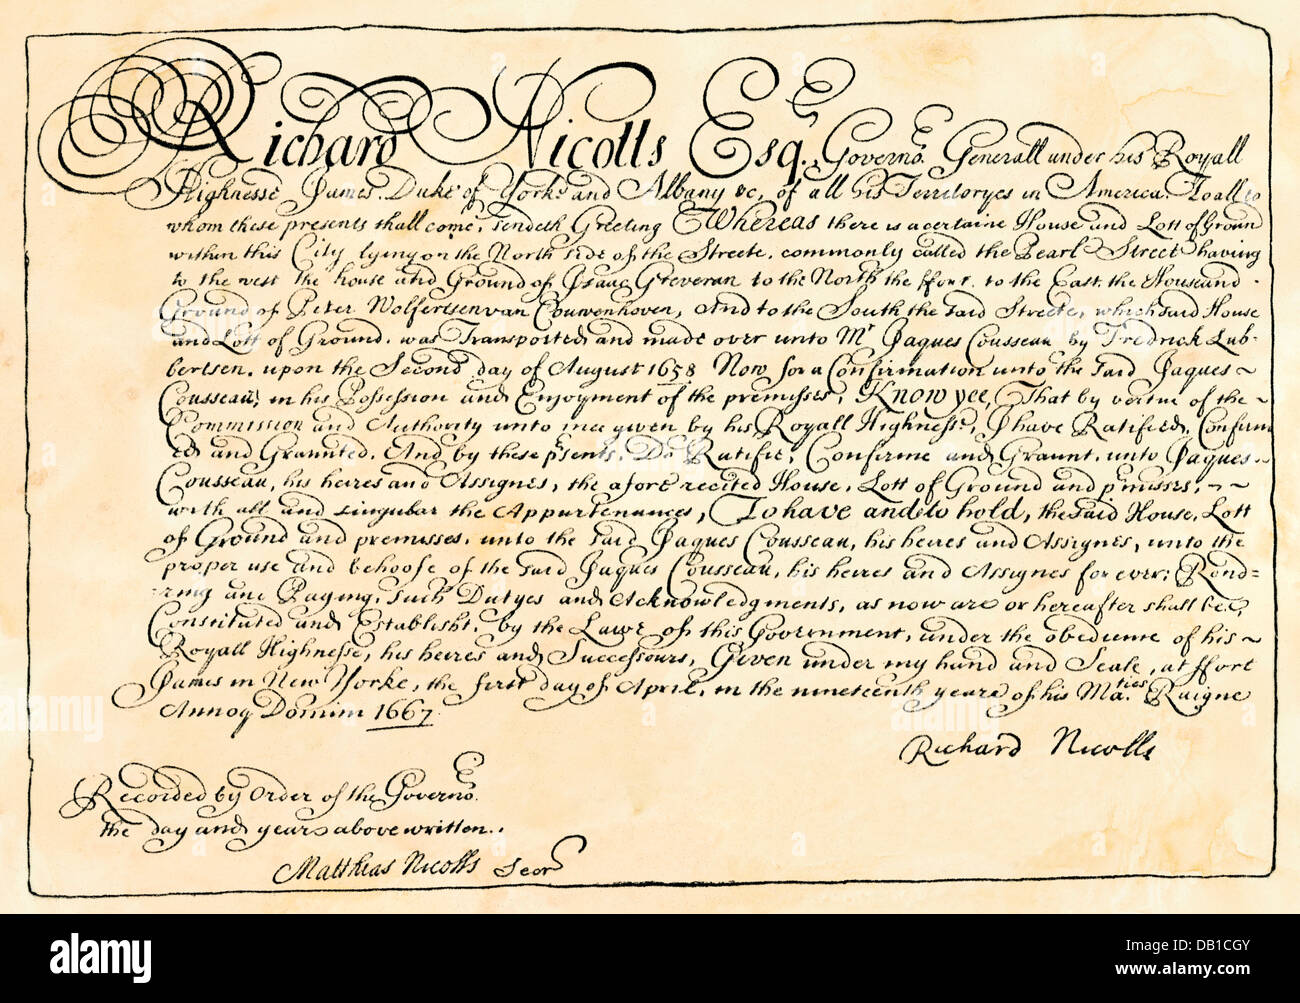 Document signed by Richard Nicolls, British governor of New York colony, 1667. Woodcut with a watercolor wash - Stock Image